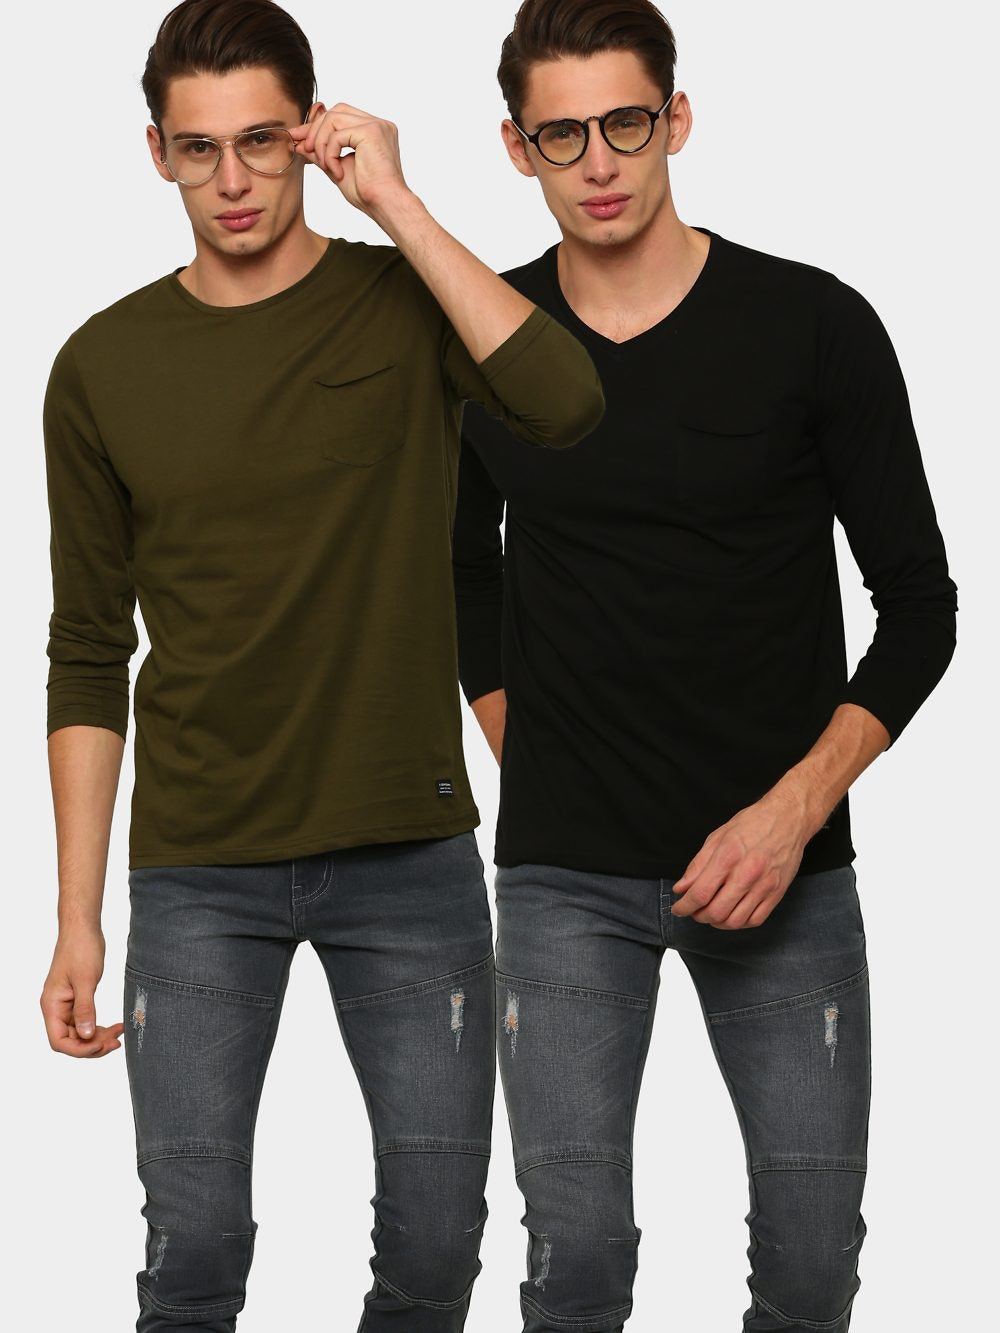 c2c172b26493 abof T-Shirts, abof Men Olive Green & Black Pack of 2 Slim Fit T ...